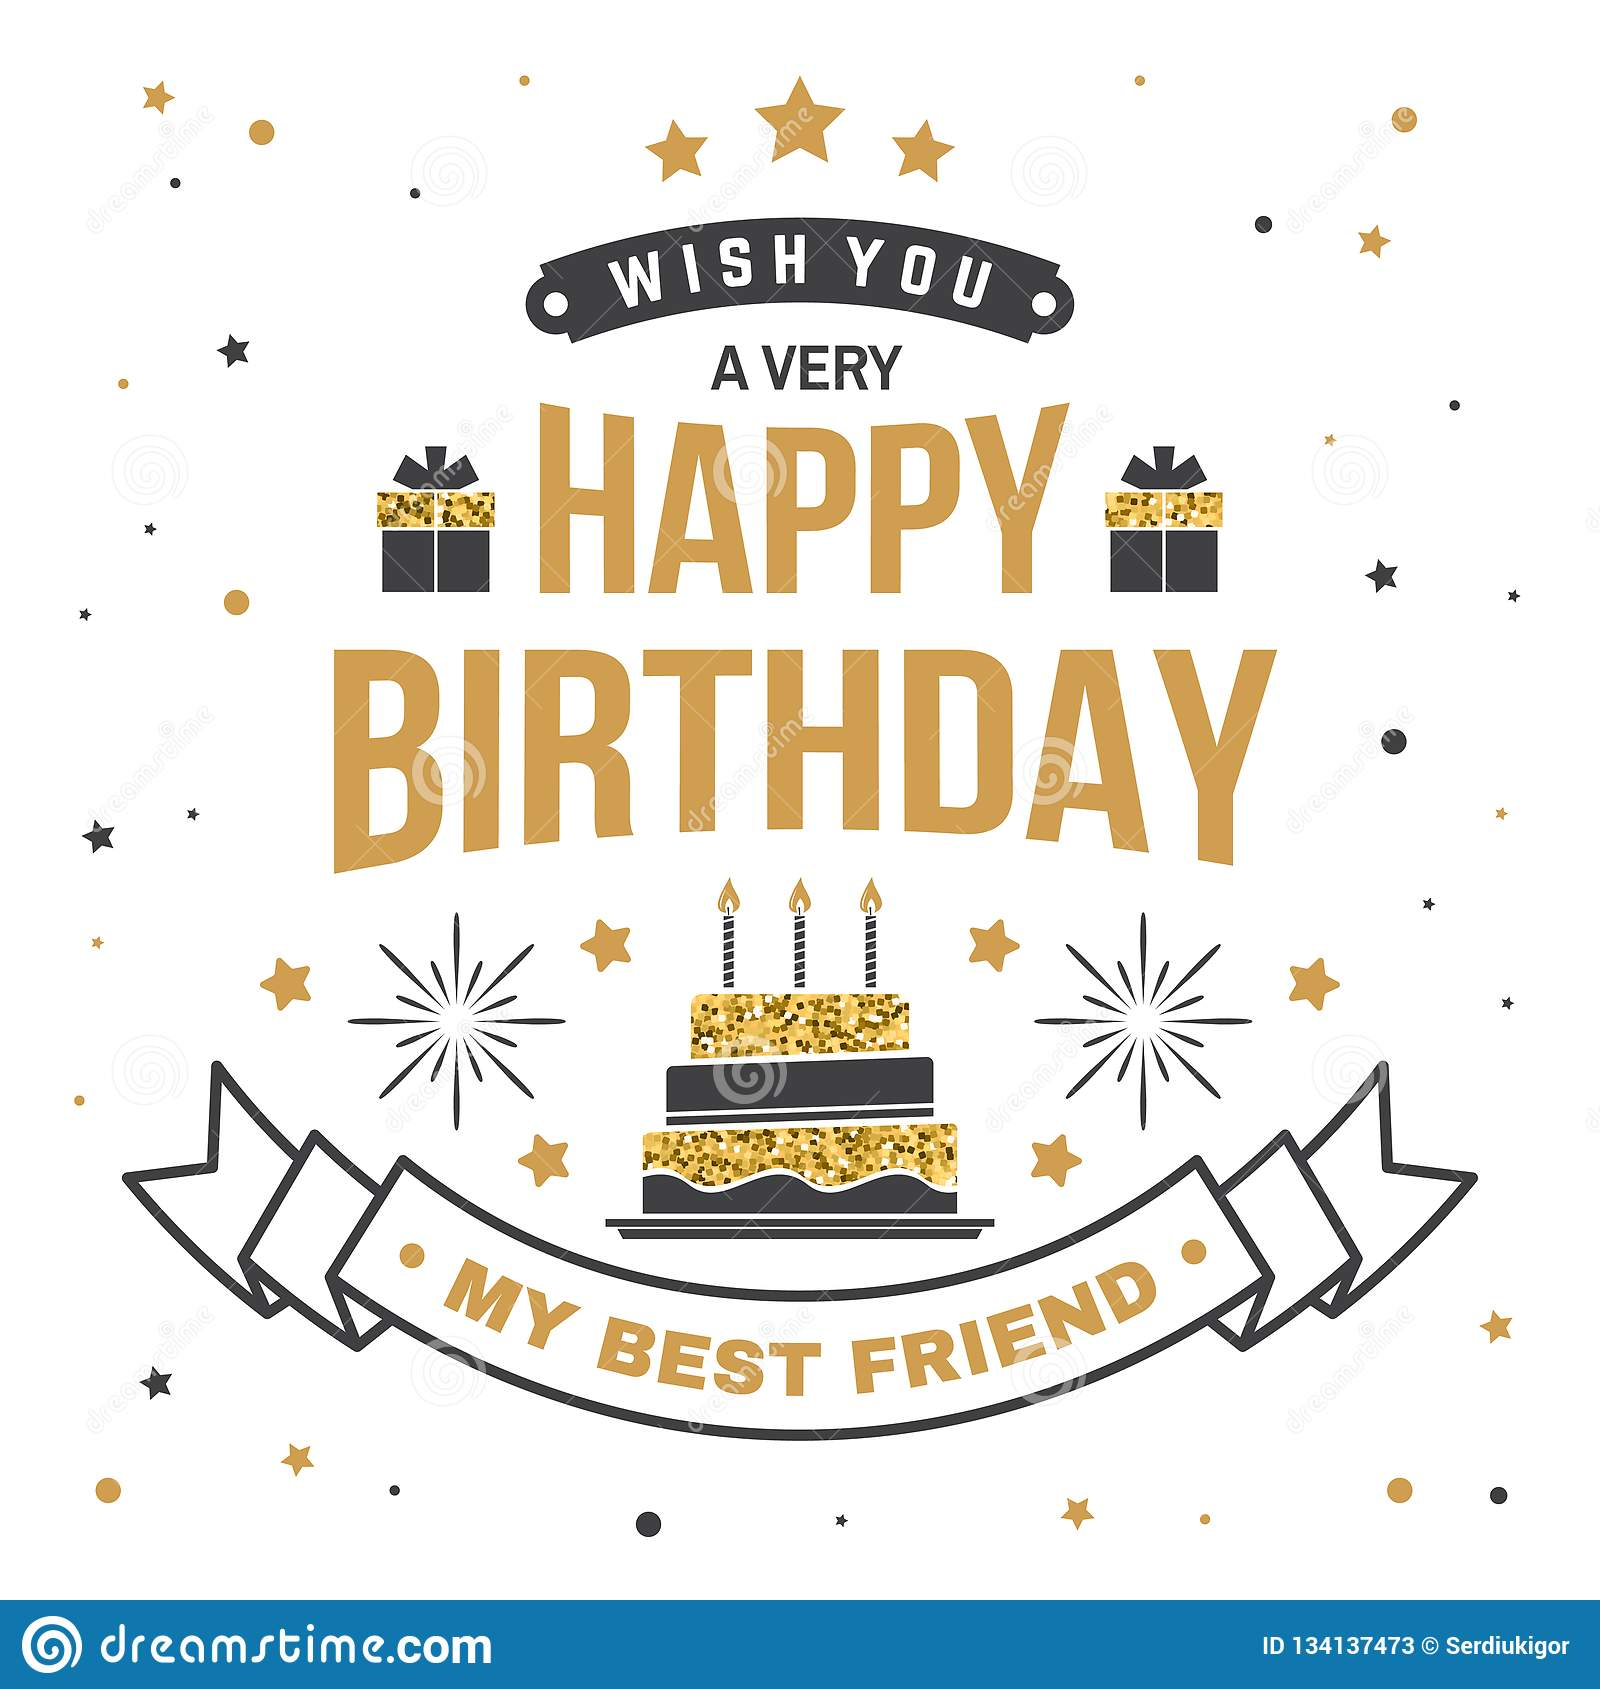 Wish You A Very Happy Birthday My Best Friend Badge Card With Gifts And Birthday Cake With Candles Vector Vintage Stock Vector Illustration Of Letter Birth 134137473